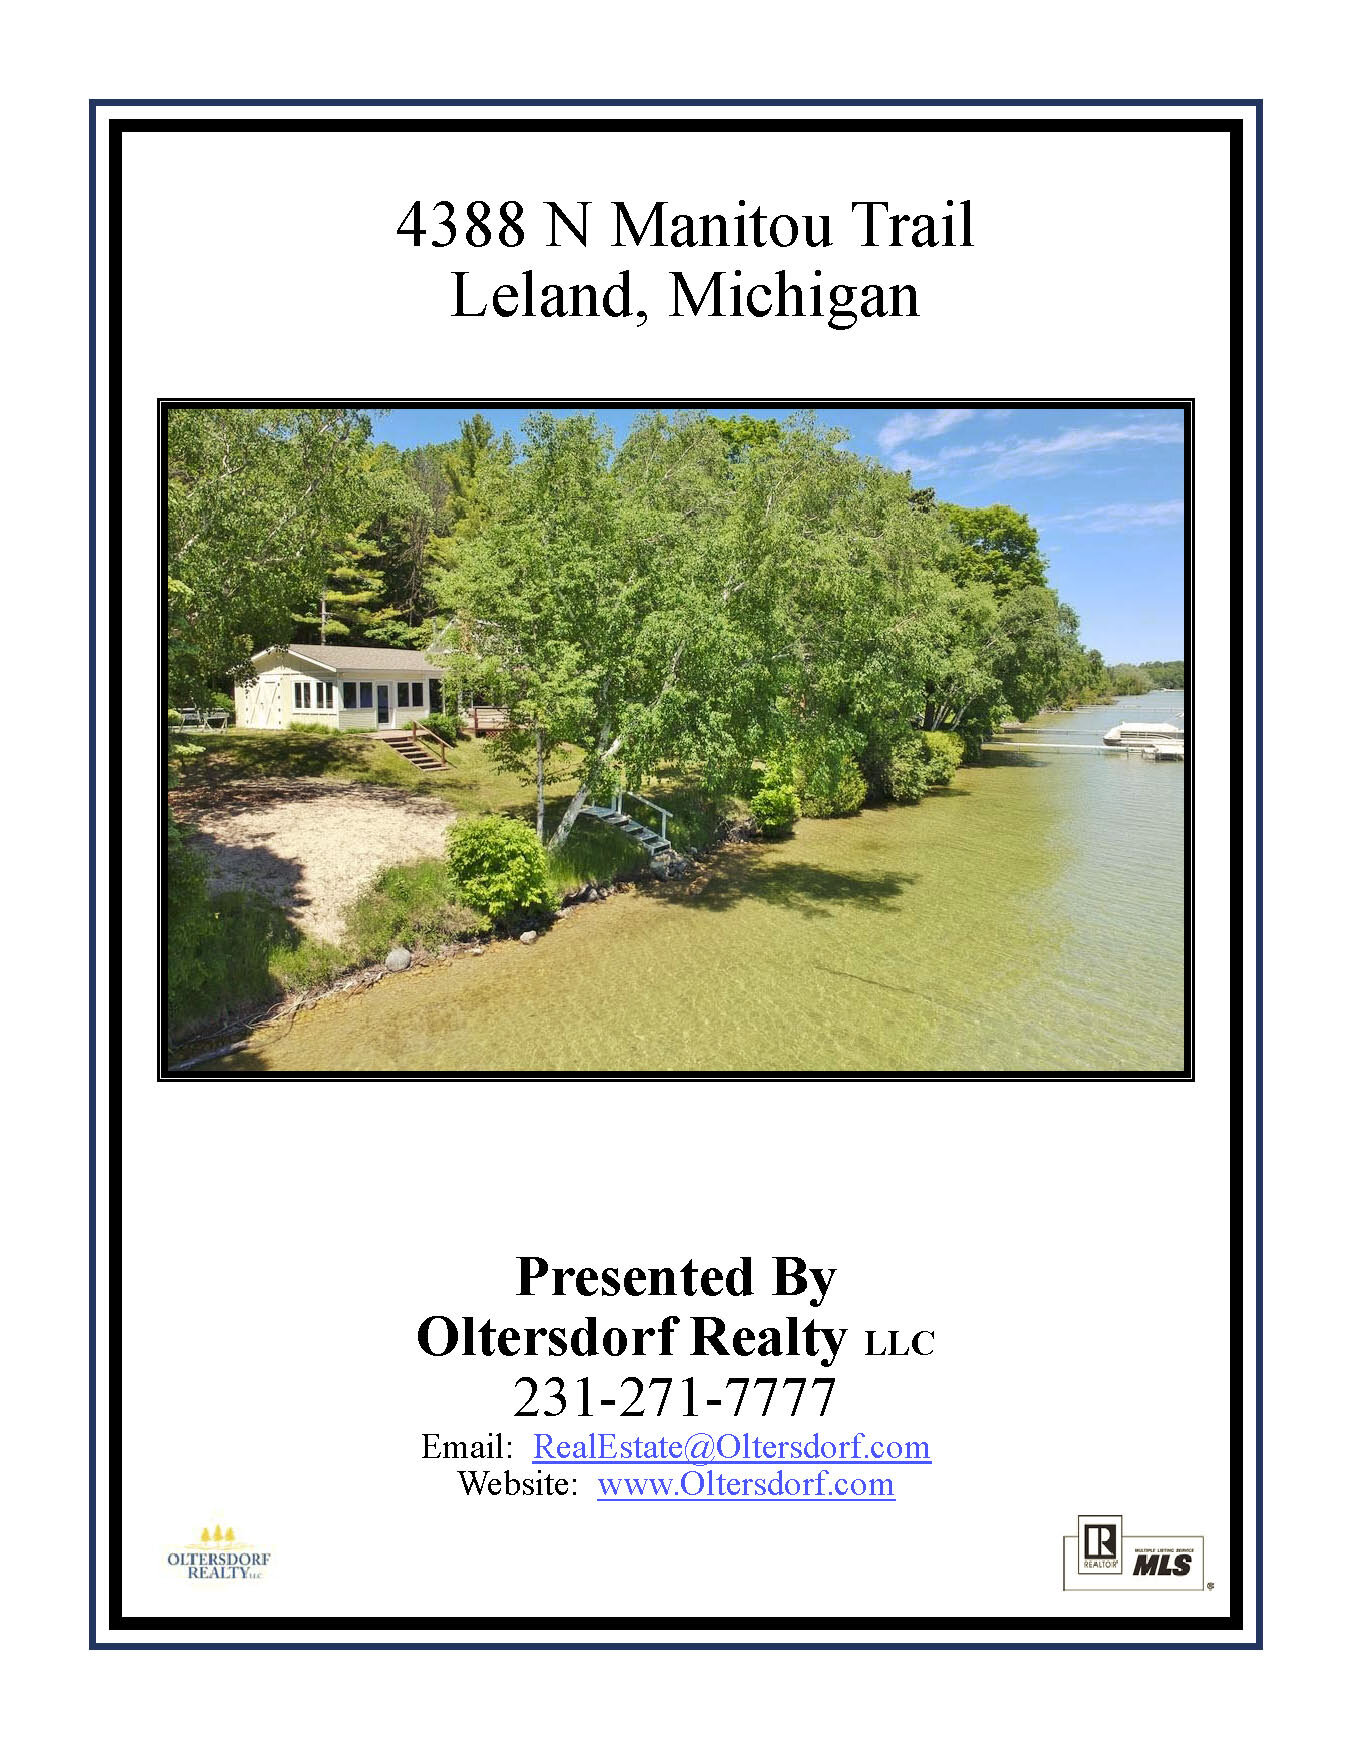 4388 N Manitou Trail, Leland - House Only Marketing Packet_Page_01.jpg